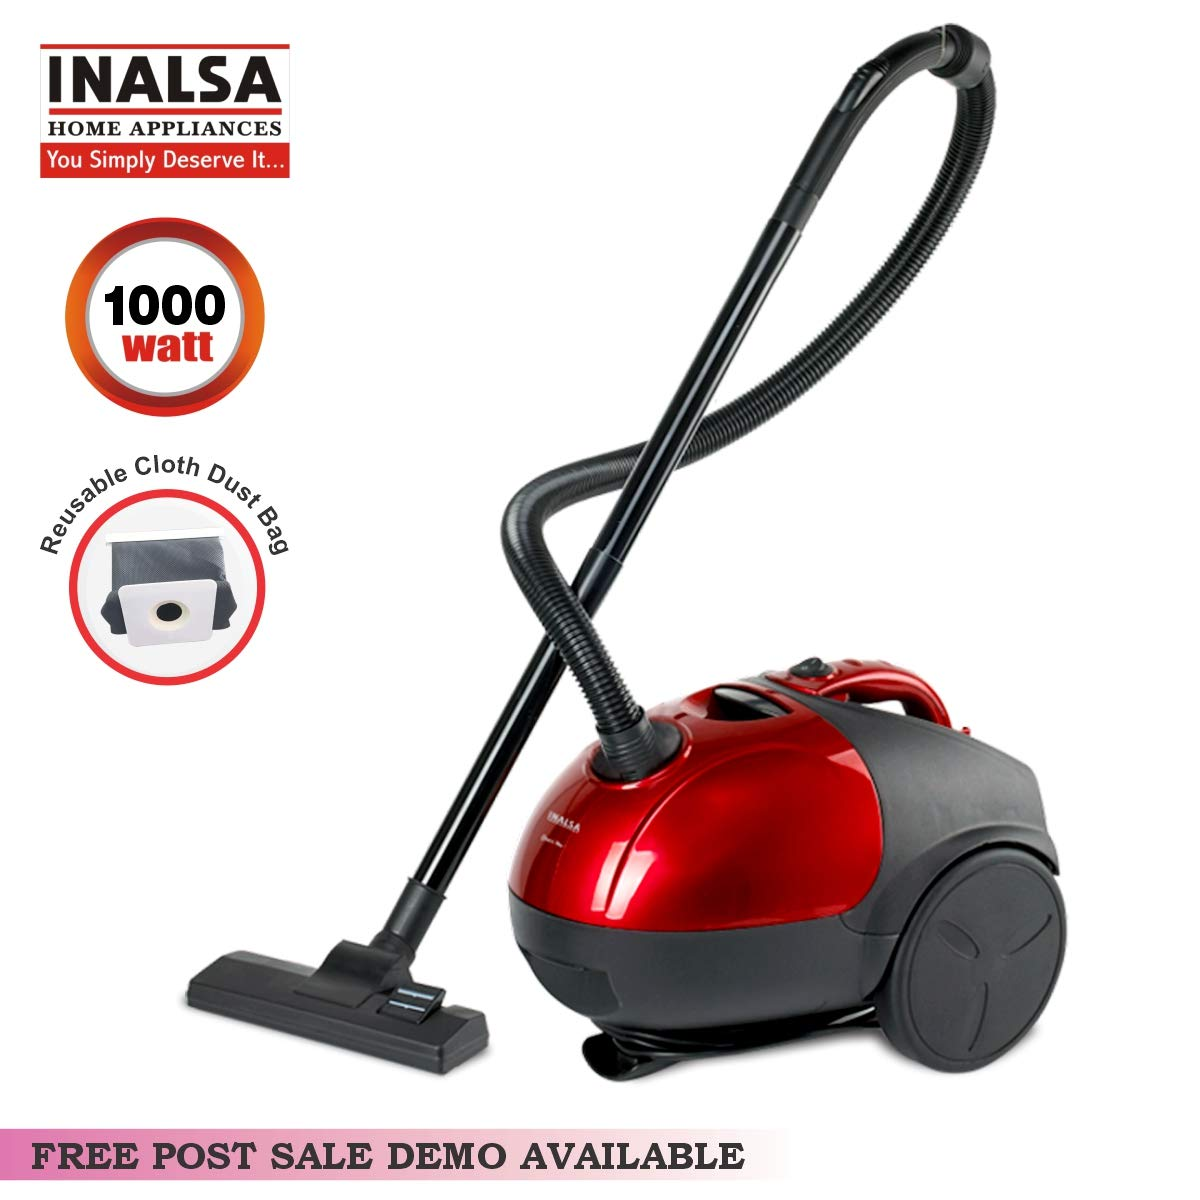 INALSA Vacuum QUICKVAC-1000W with 1.5L Washable Cloth Filter Bag, 100% Copper Motor, Powerful 16KPA Suction, Easy Movement, Dust Bag Full Indicator, Cord Winder, (Red/Black)